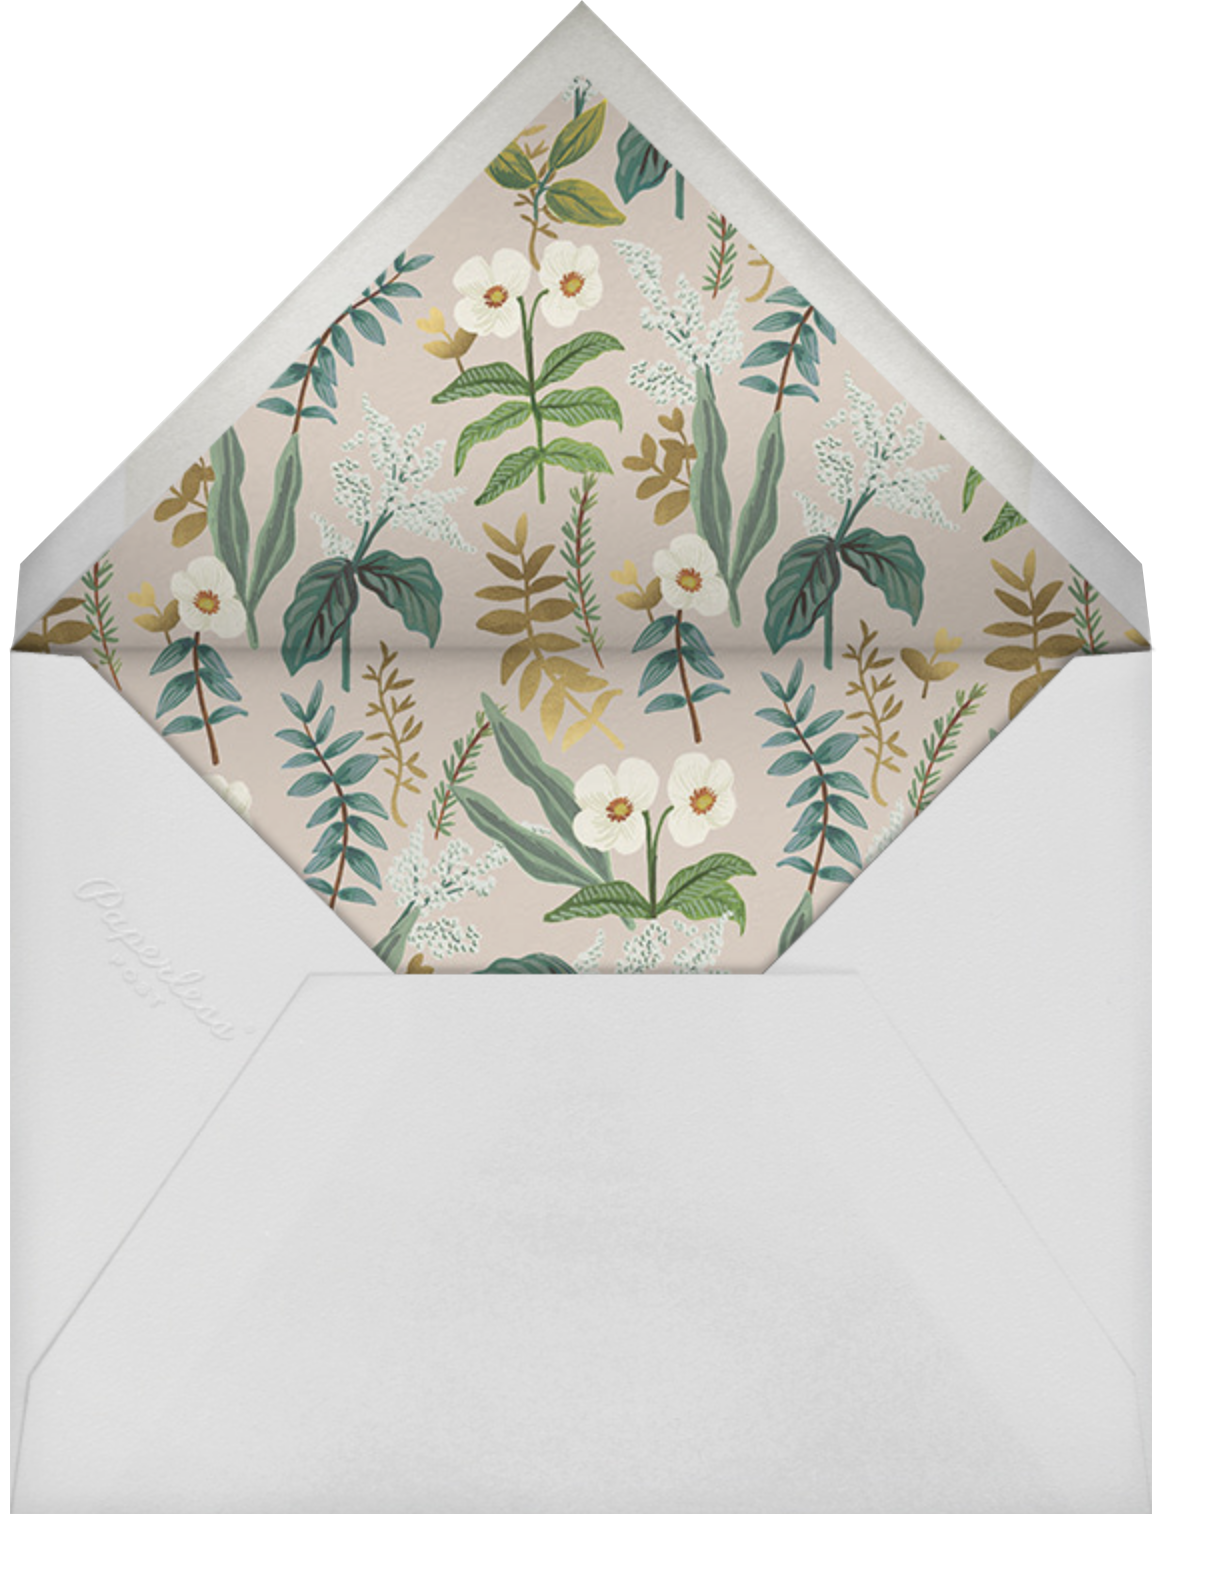 Meadow Garland Photo - Rifle Paper Co. - Professional events - envelope back